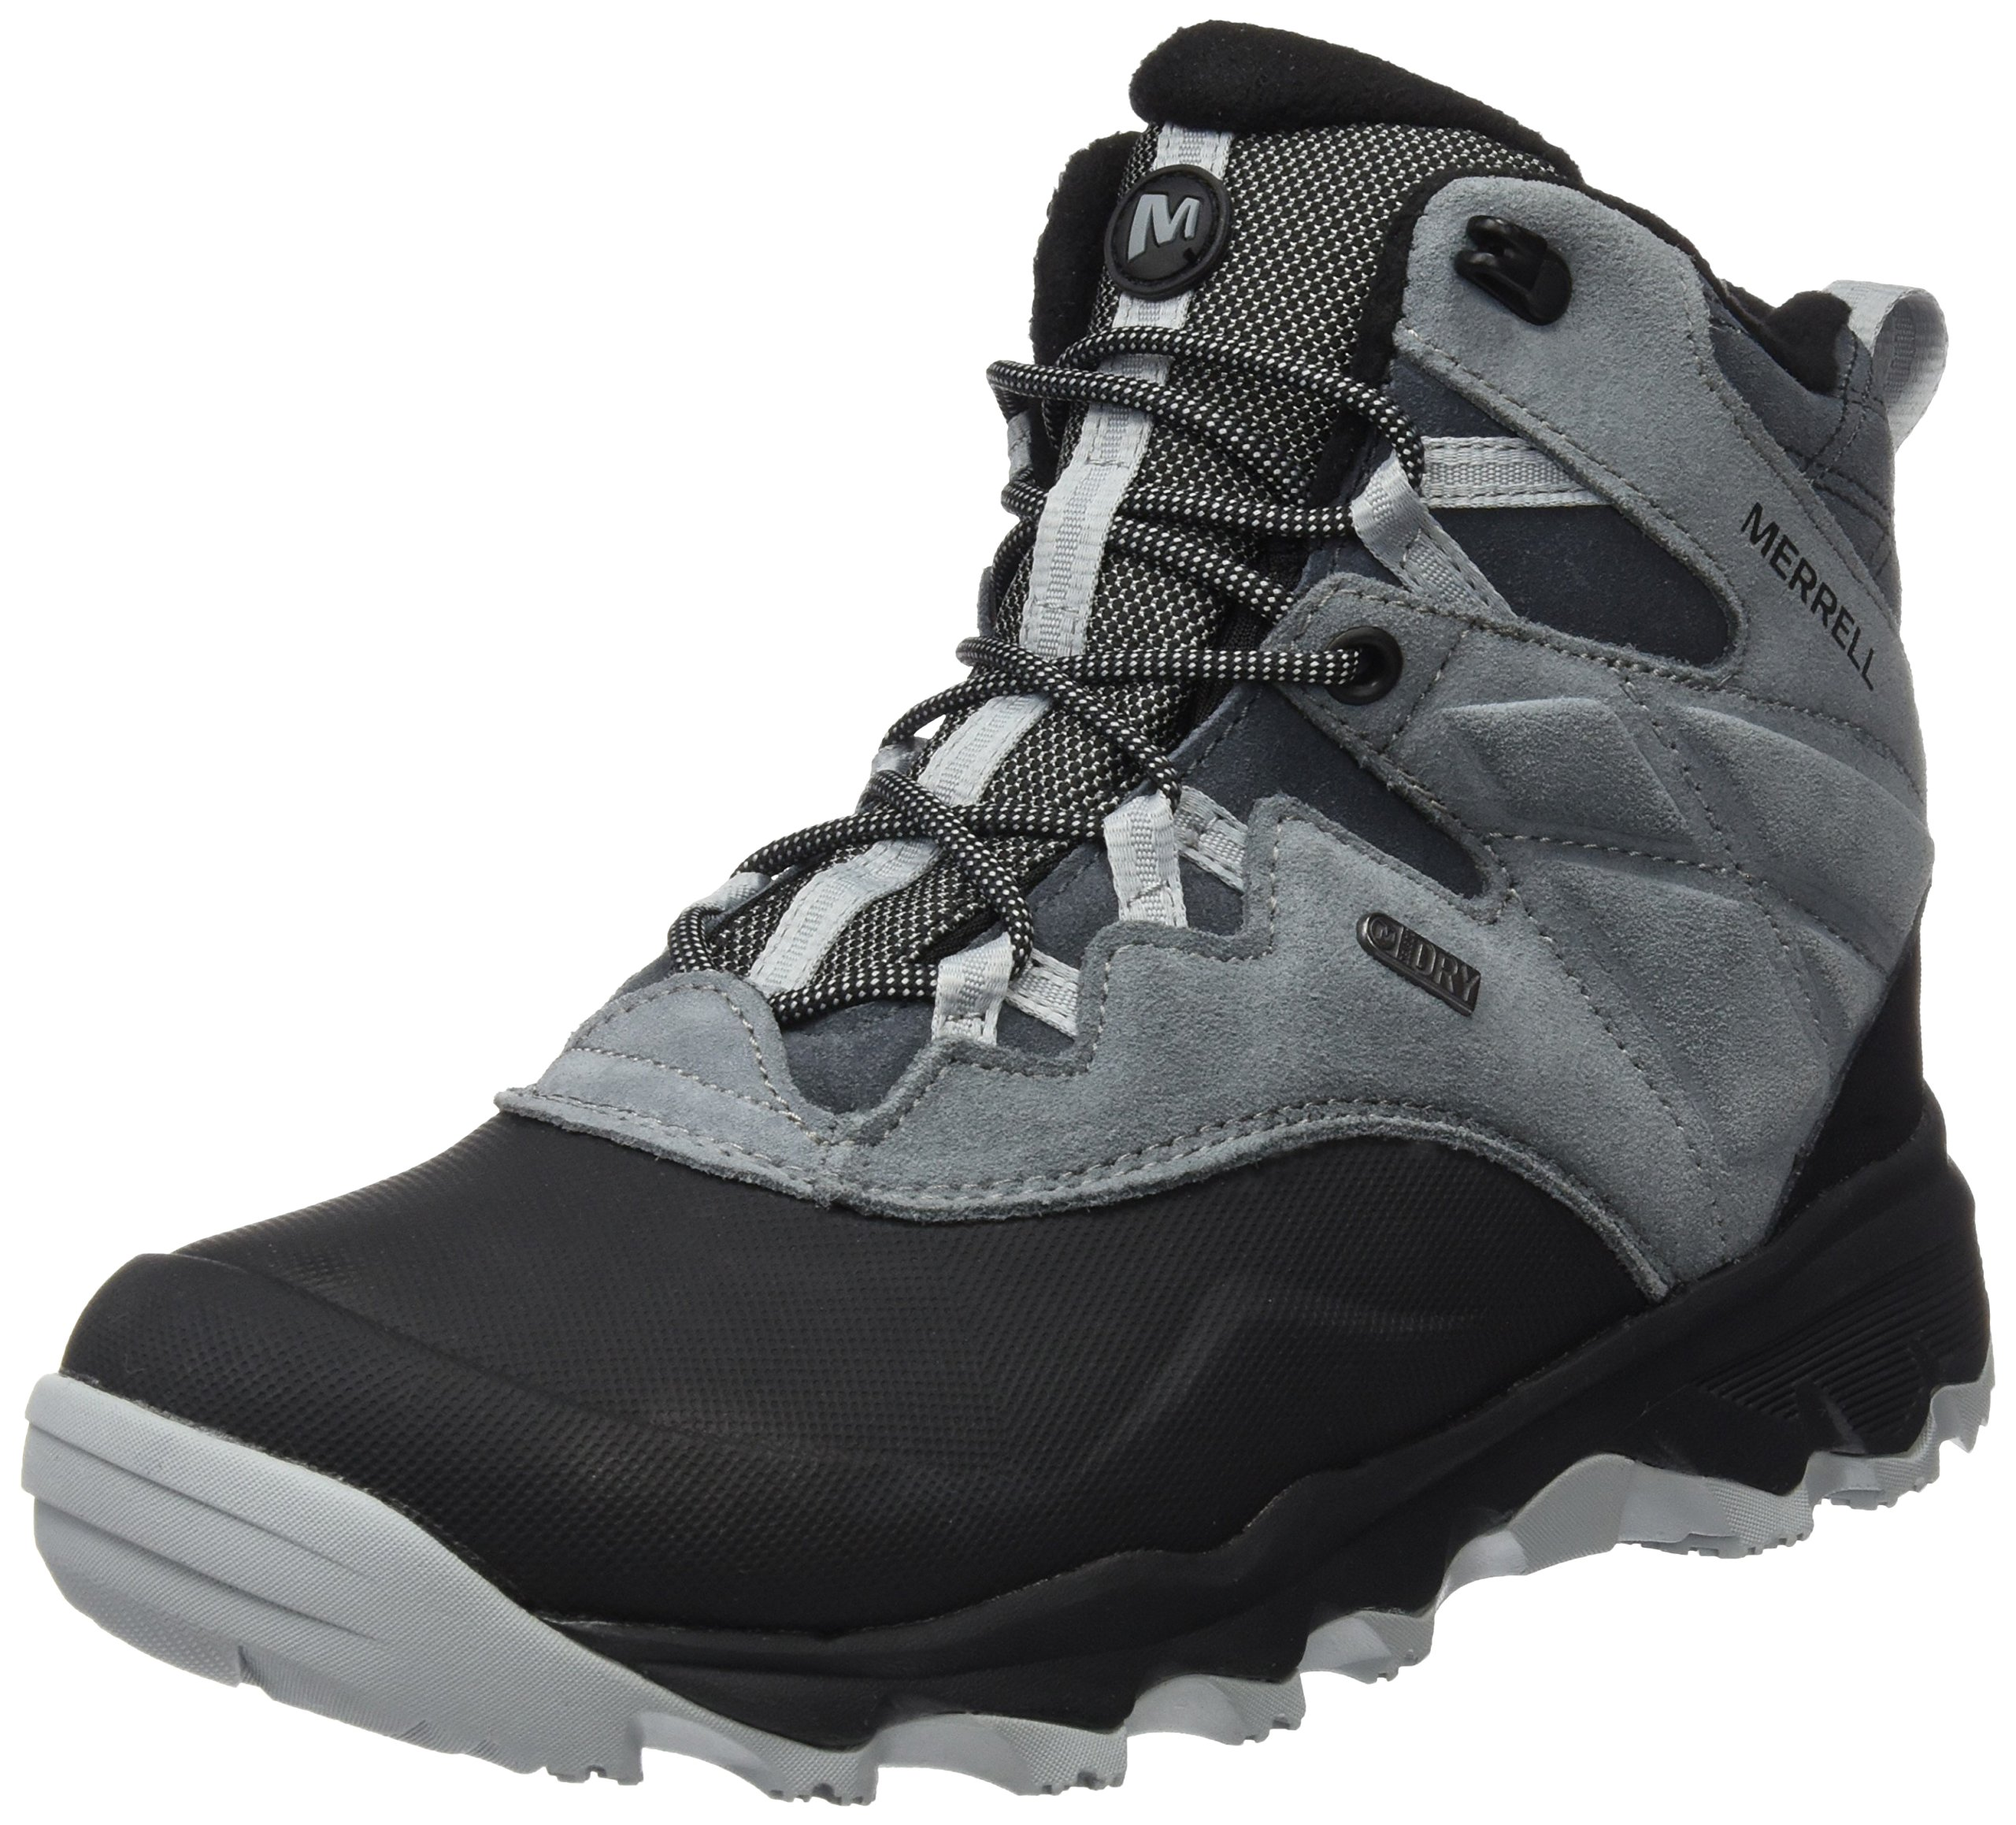 """91PDPfY6nTL - Merrell Men's Thermo Shiver 6"""" Waterproof High Rise Hiking Boots"""